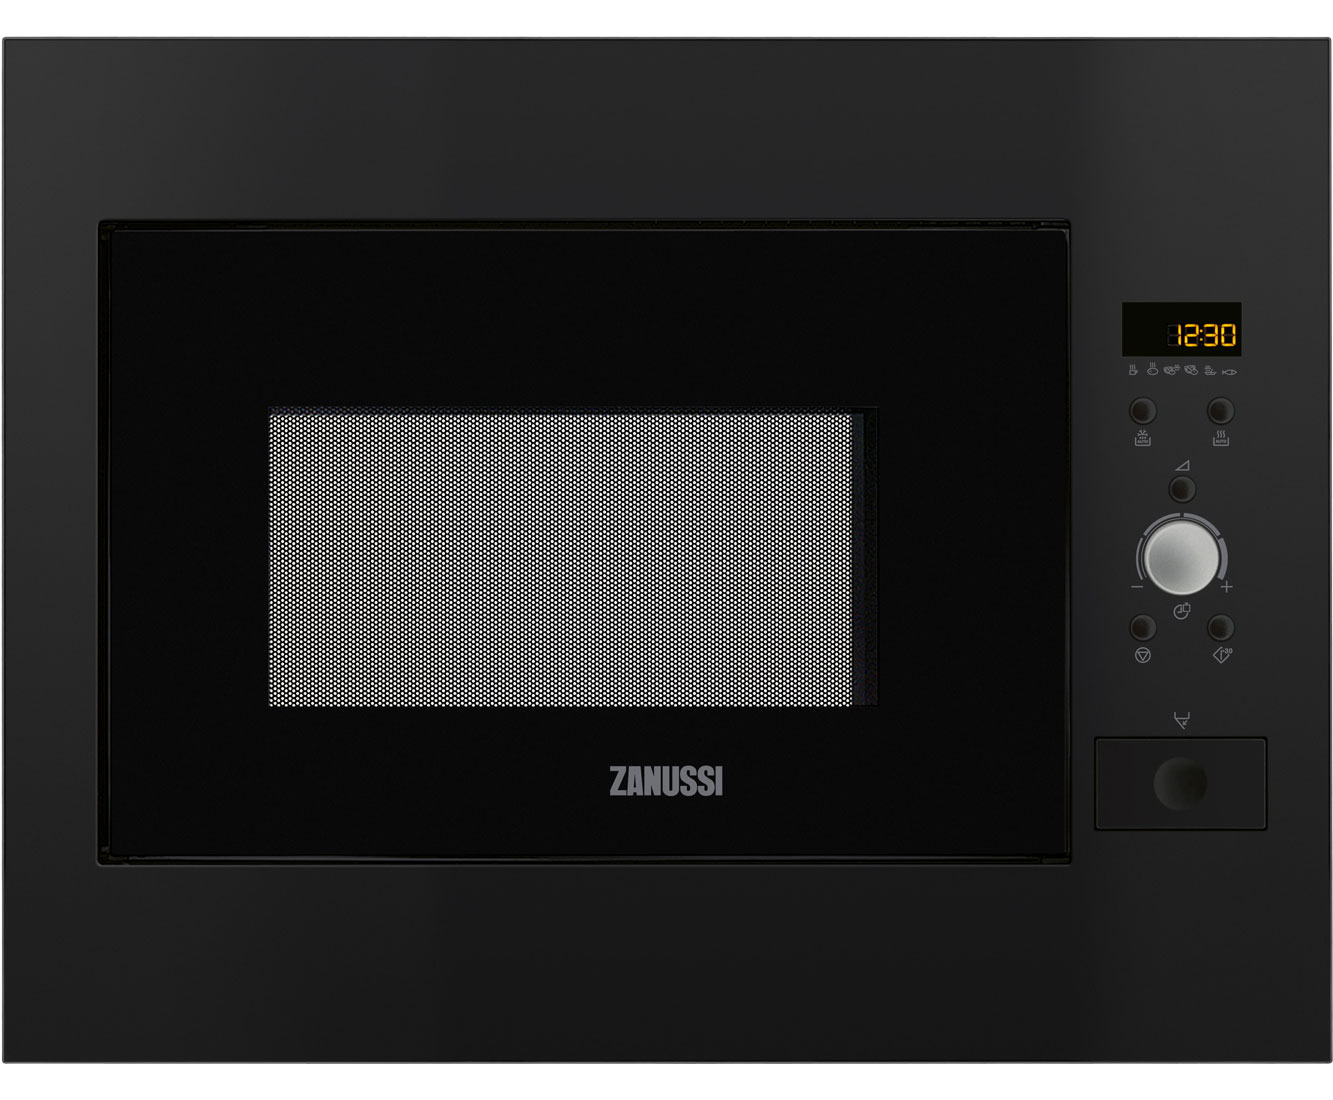 Zanussi ZBM26542BA Integrated Microwave Oven in Black